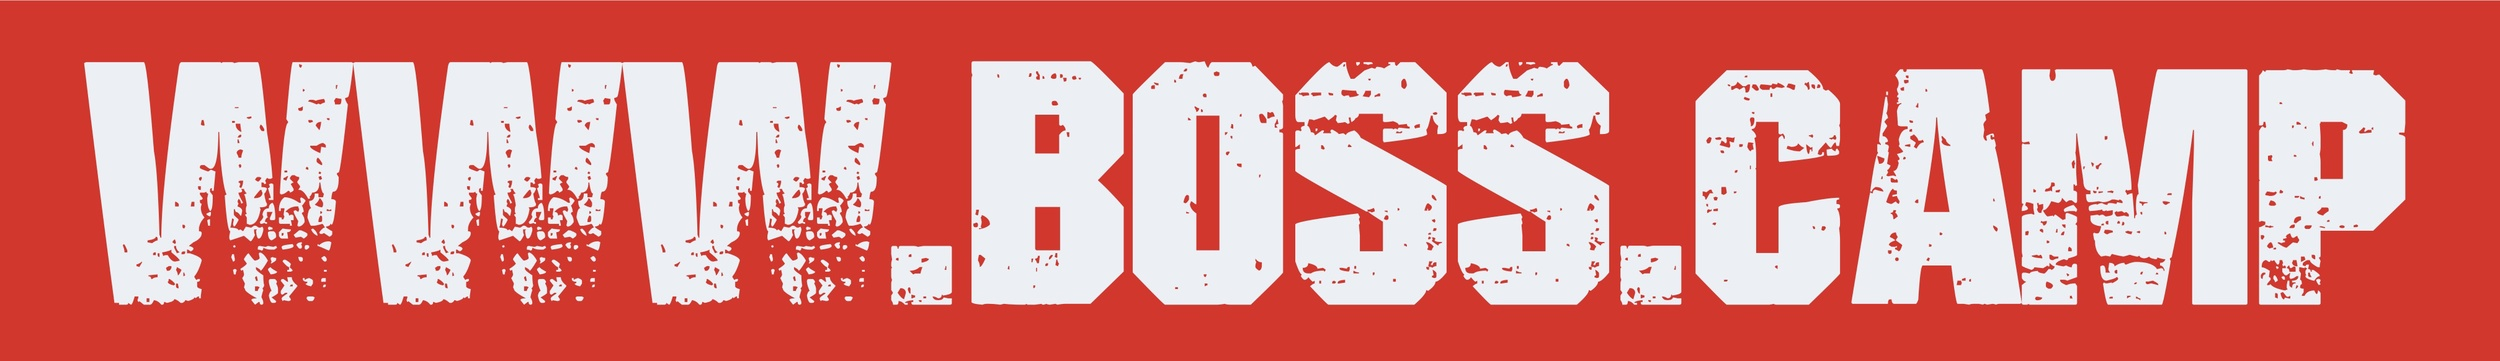 Taking on a new role in management? Find out how to make managing easy with www.boss.camp Jpeg